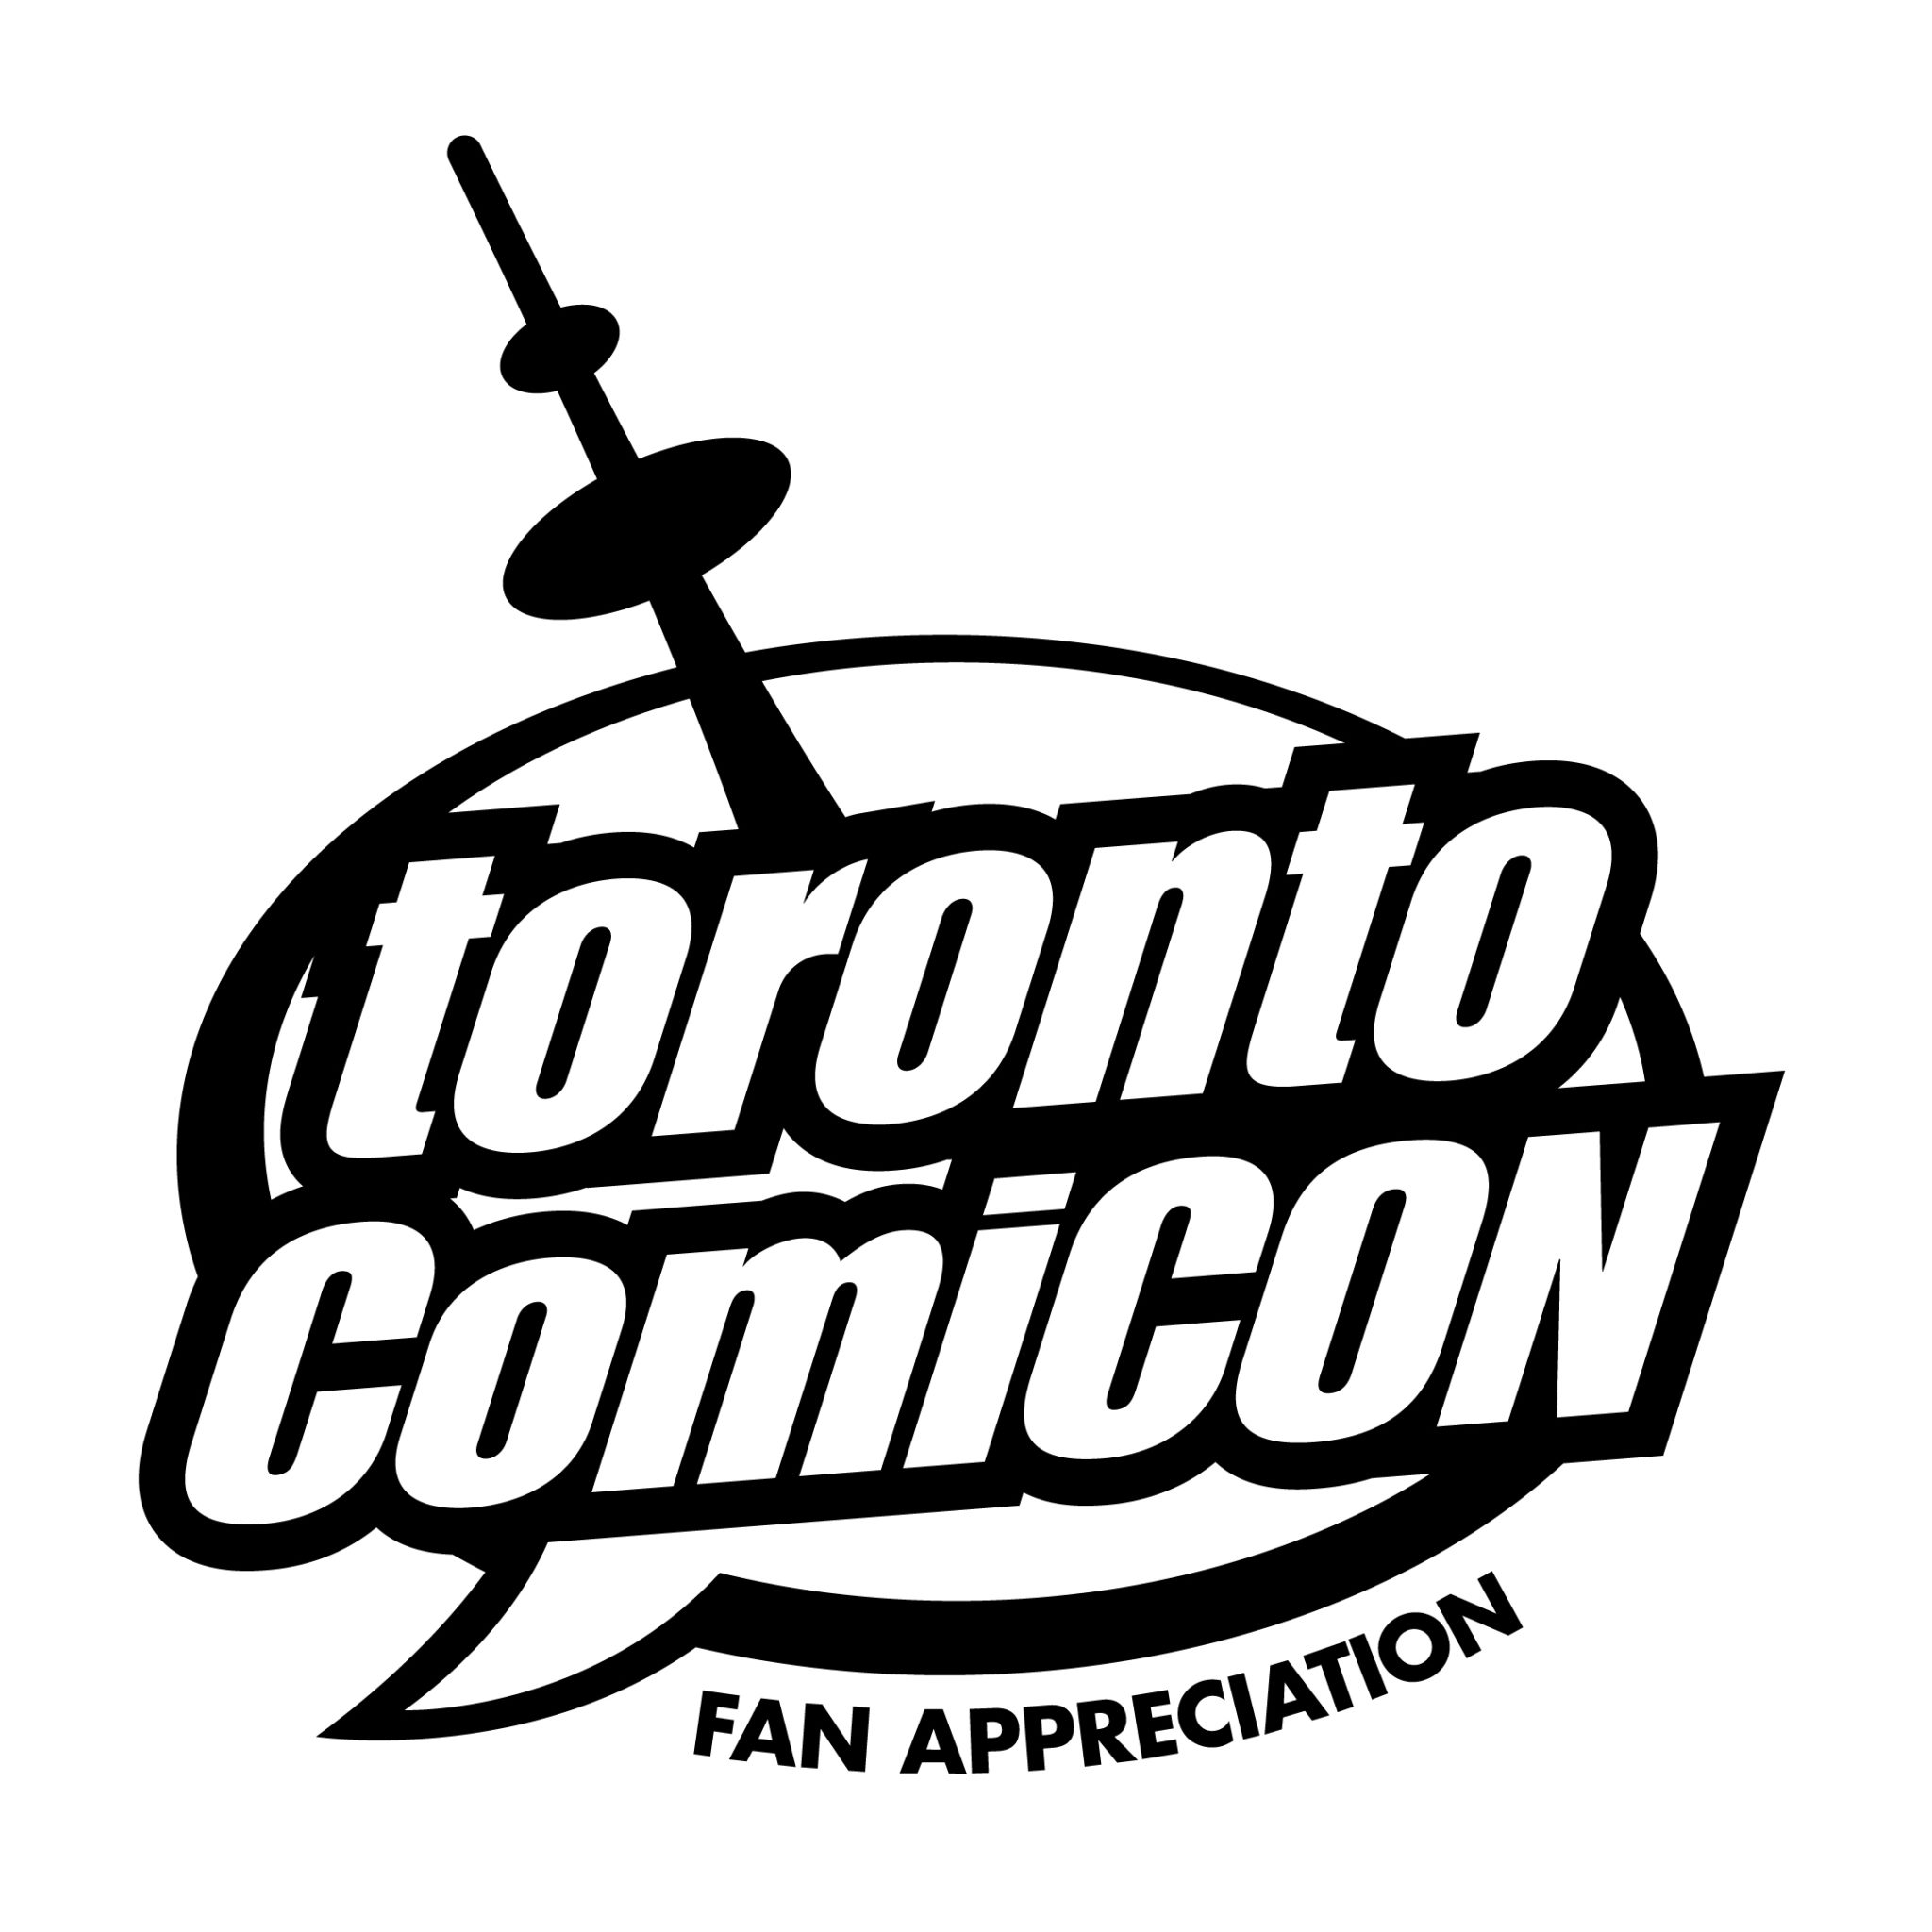 My day at the Toronto ComiCON Fan Appreciation Event